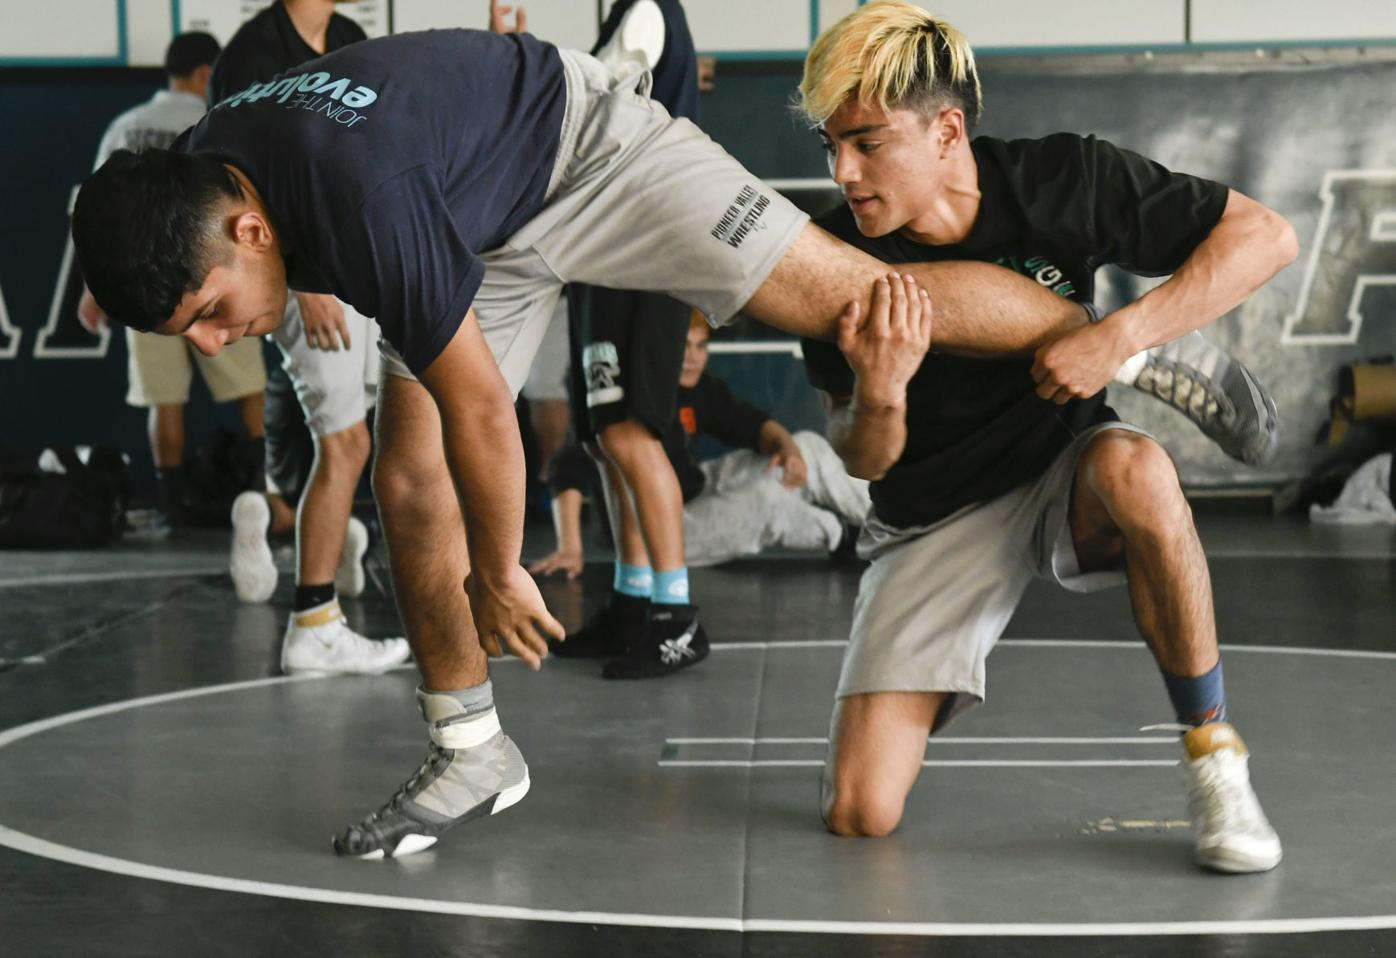 Pioneer Valley's boys wrestling team, with an assist, wins Division 2 title